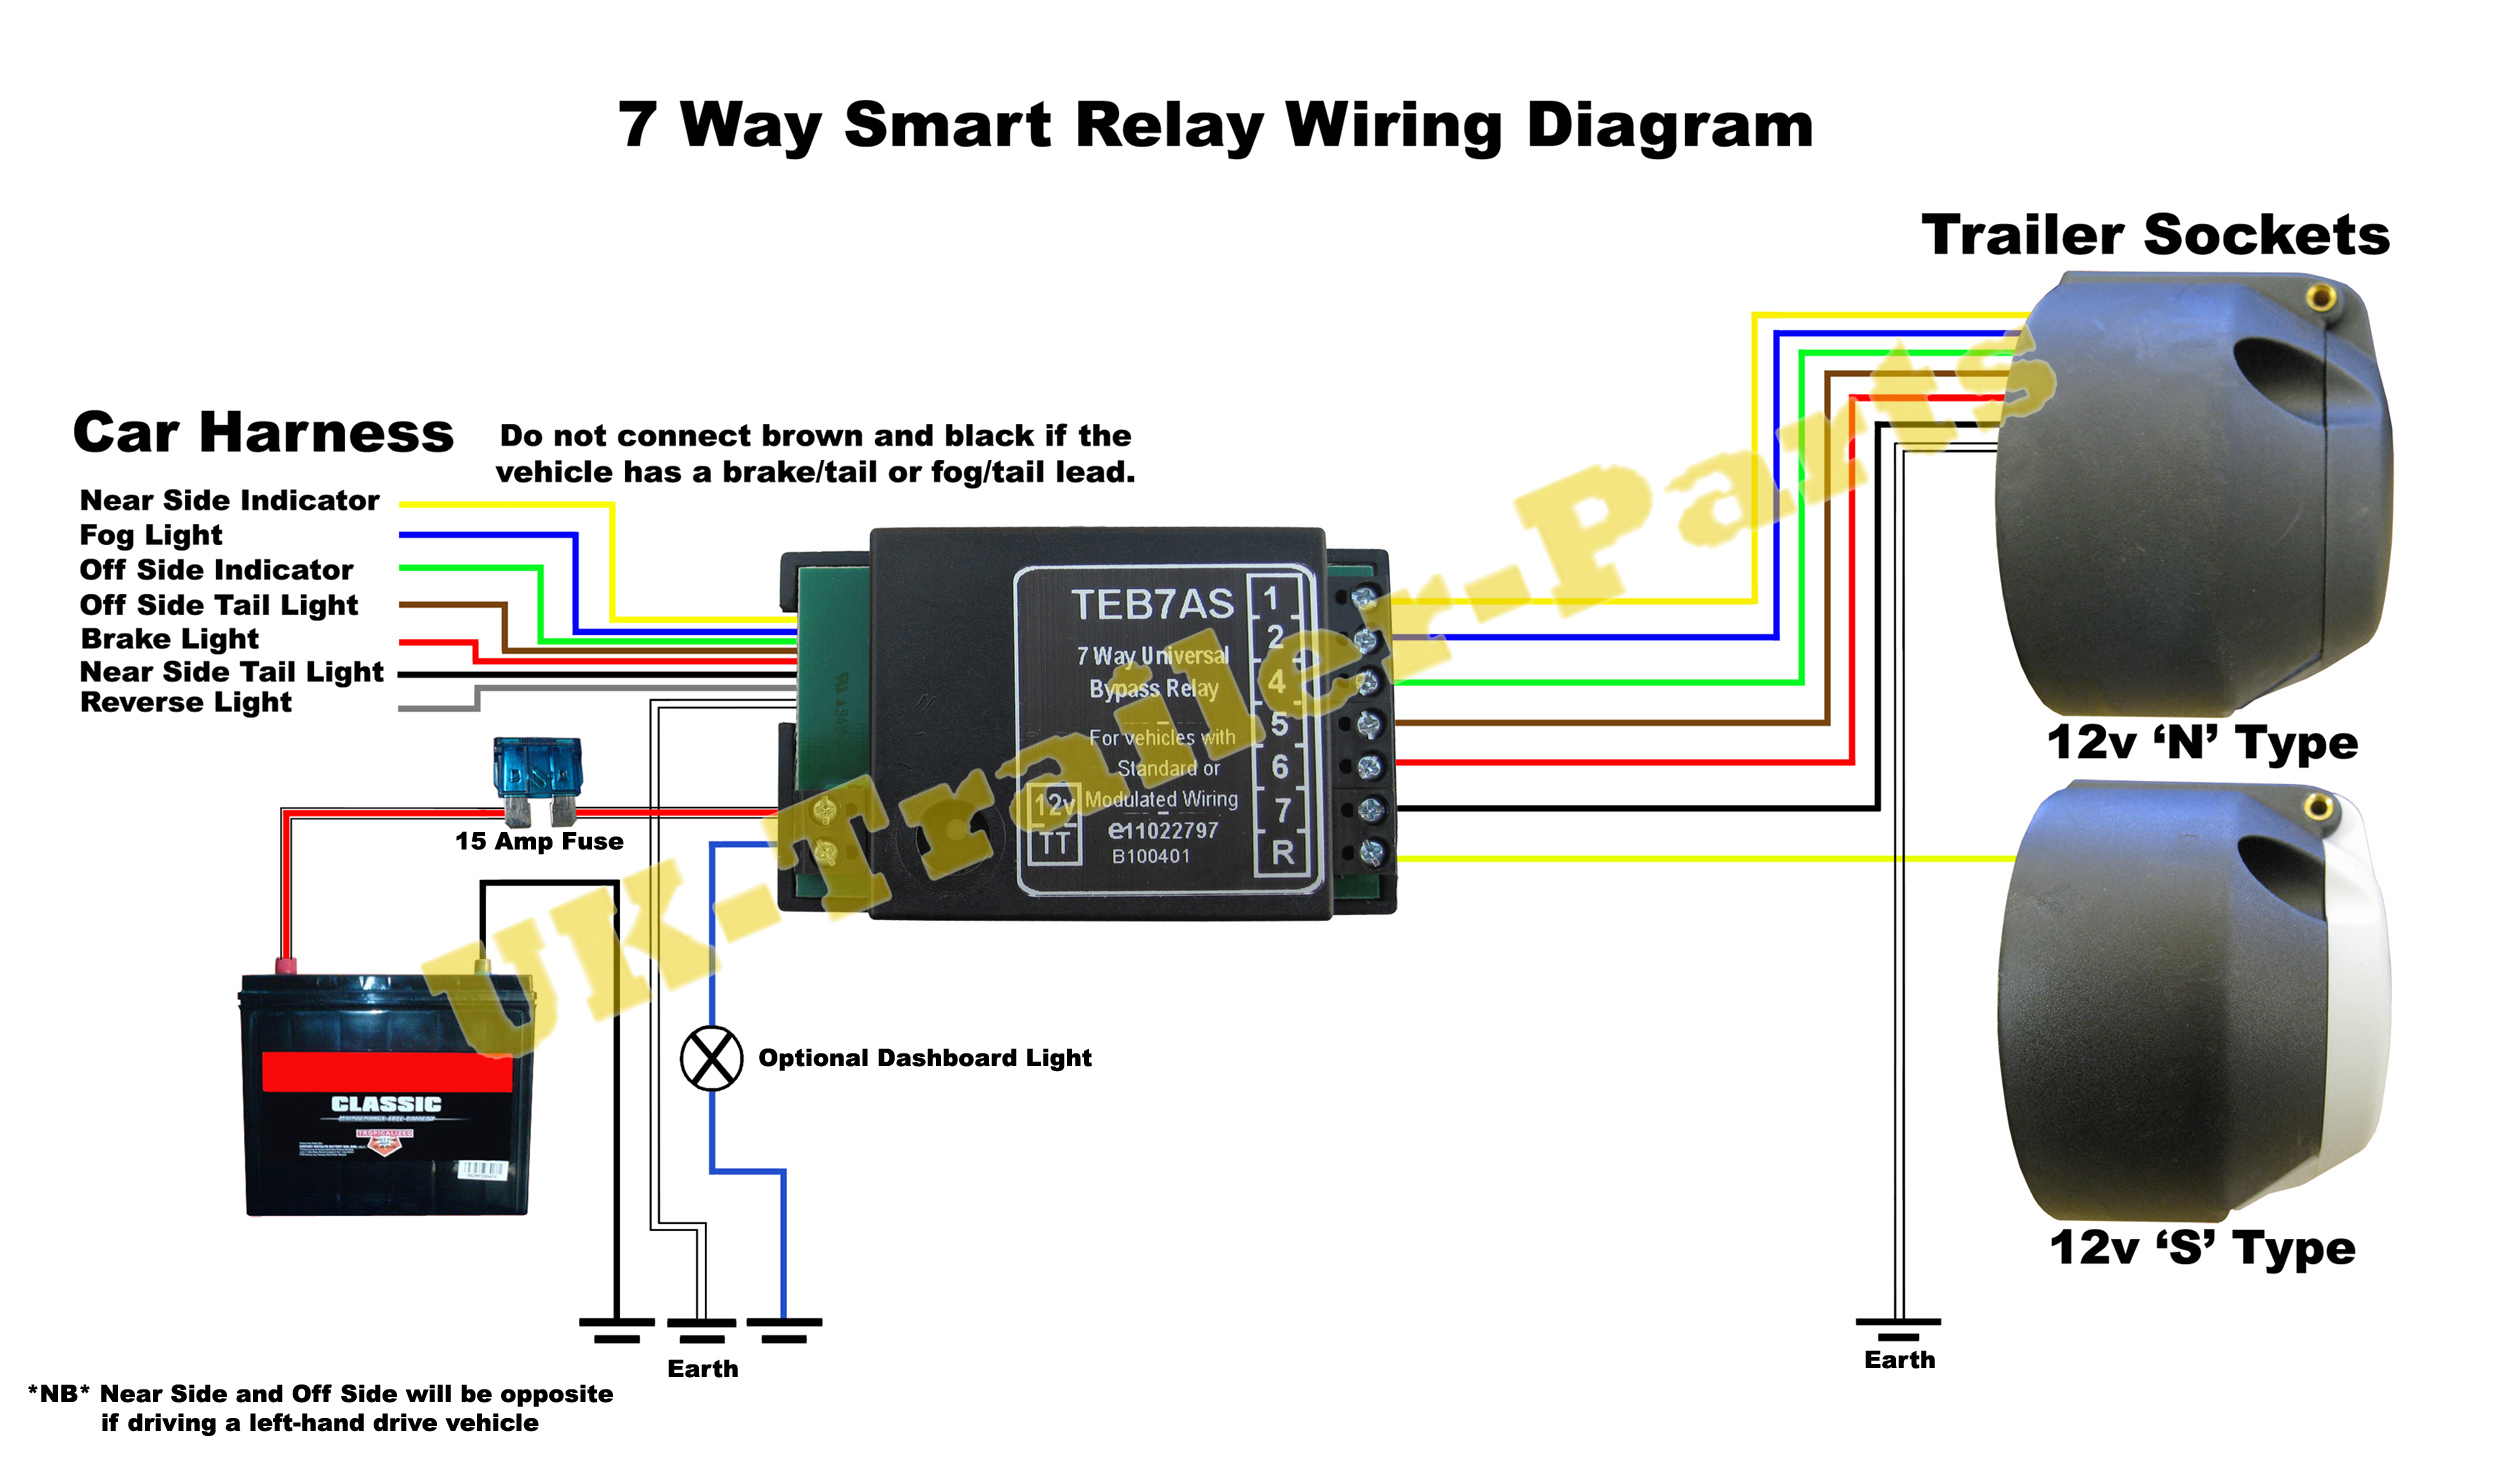 smart relay wiring diagram2 7 way universal bypass relay wiring diagram uk trailer parts trailer lights wiring diagram 4 wire at readyjetset.co